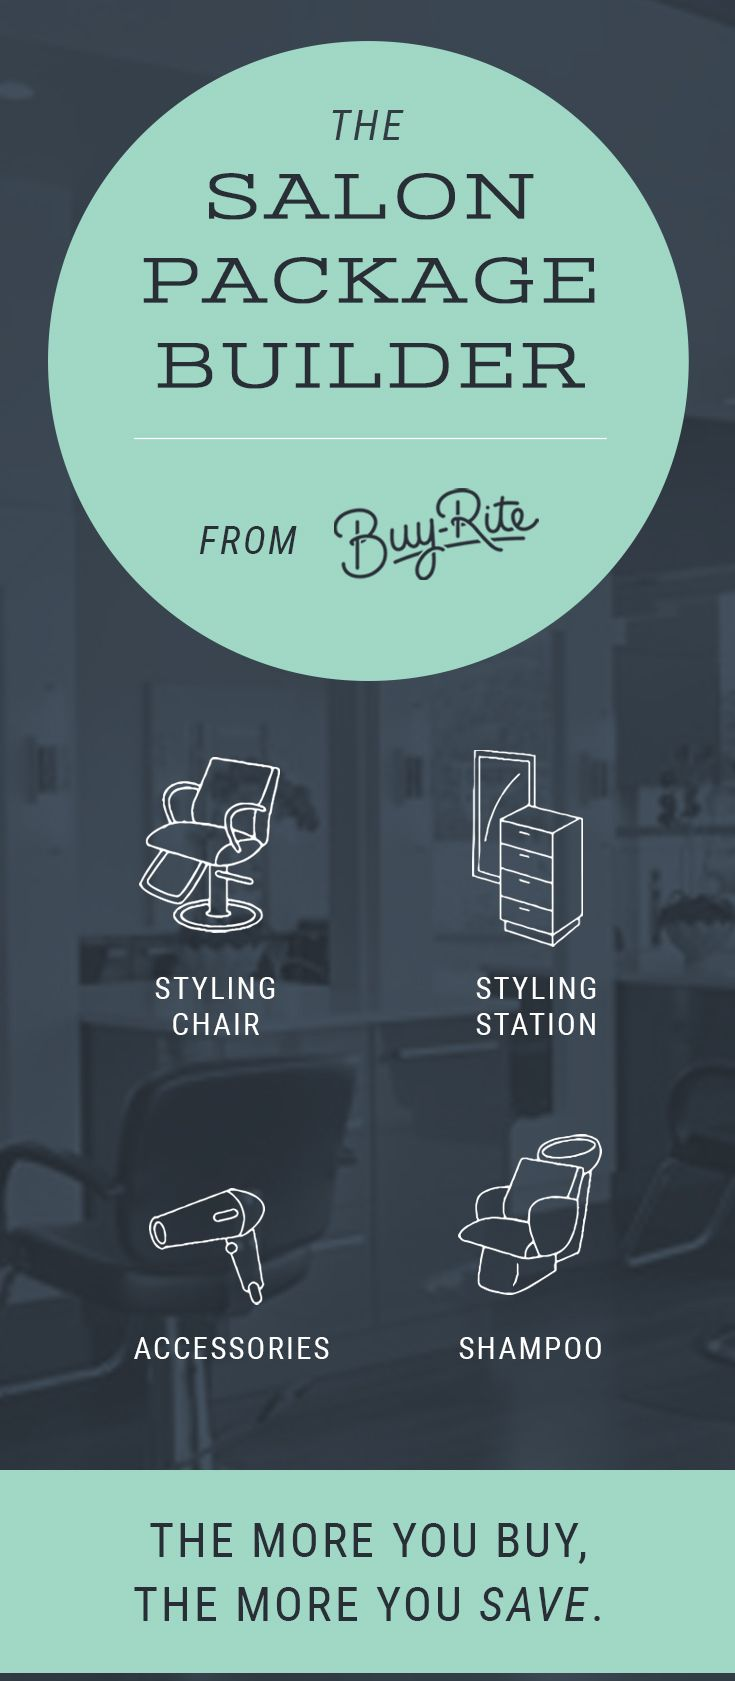 Check out Buy-Rite Beauty's Salon Package Builder. Built for the business owner to help create that perfect combination of equipment, while maximizing savings!